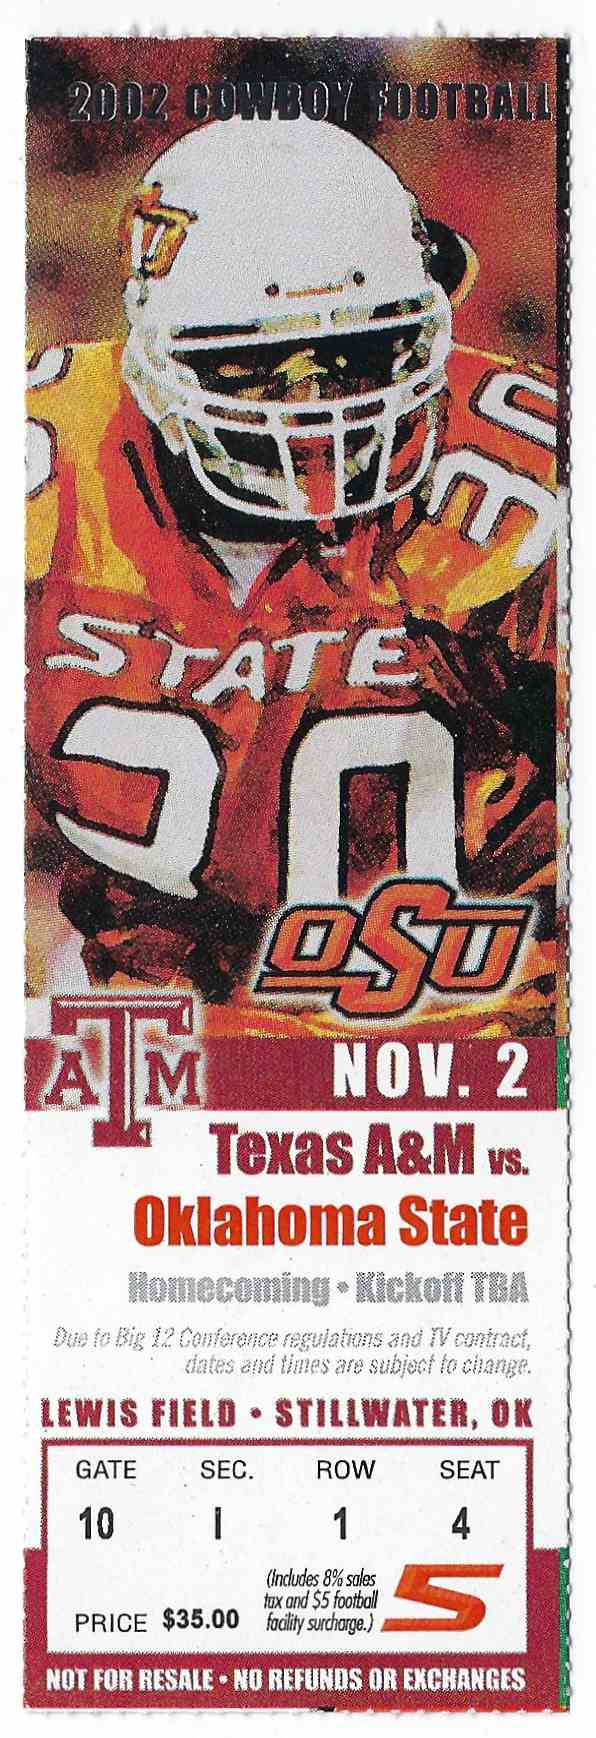 2002 College Football Ticket Stub Texas A&M Vs Oklahoma State card front image